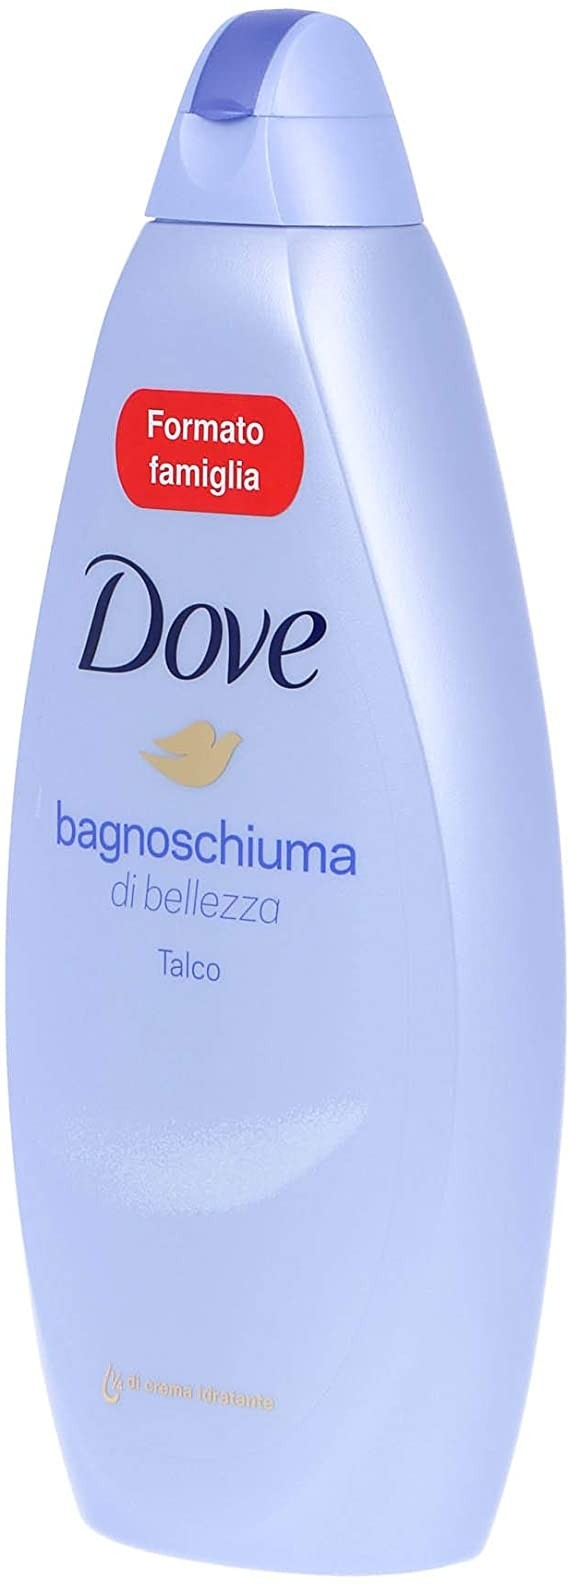 Gel Douche Dove Talco 700 ml